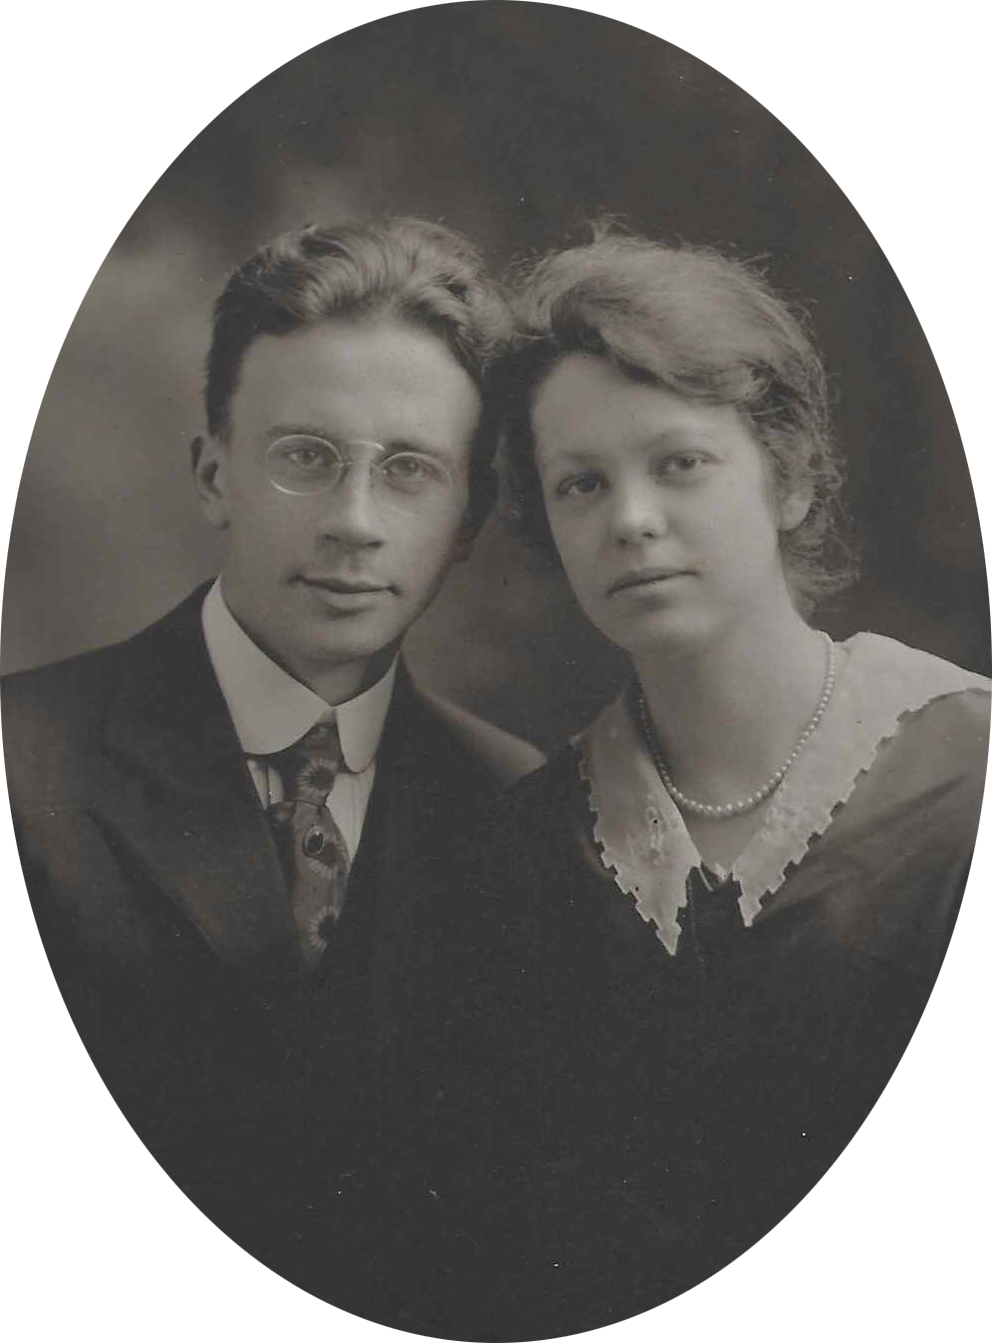 Wedding photo of Rupert and his wife, Ruth (both age 21)